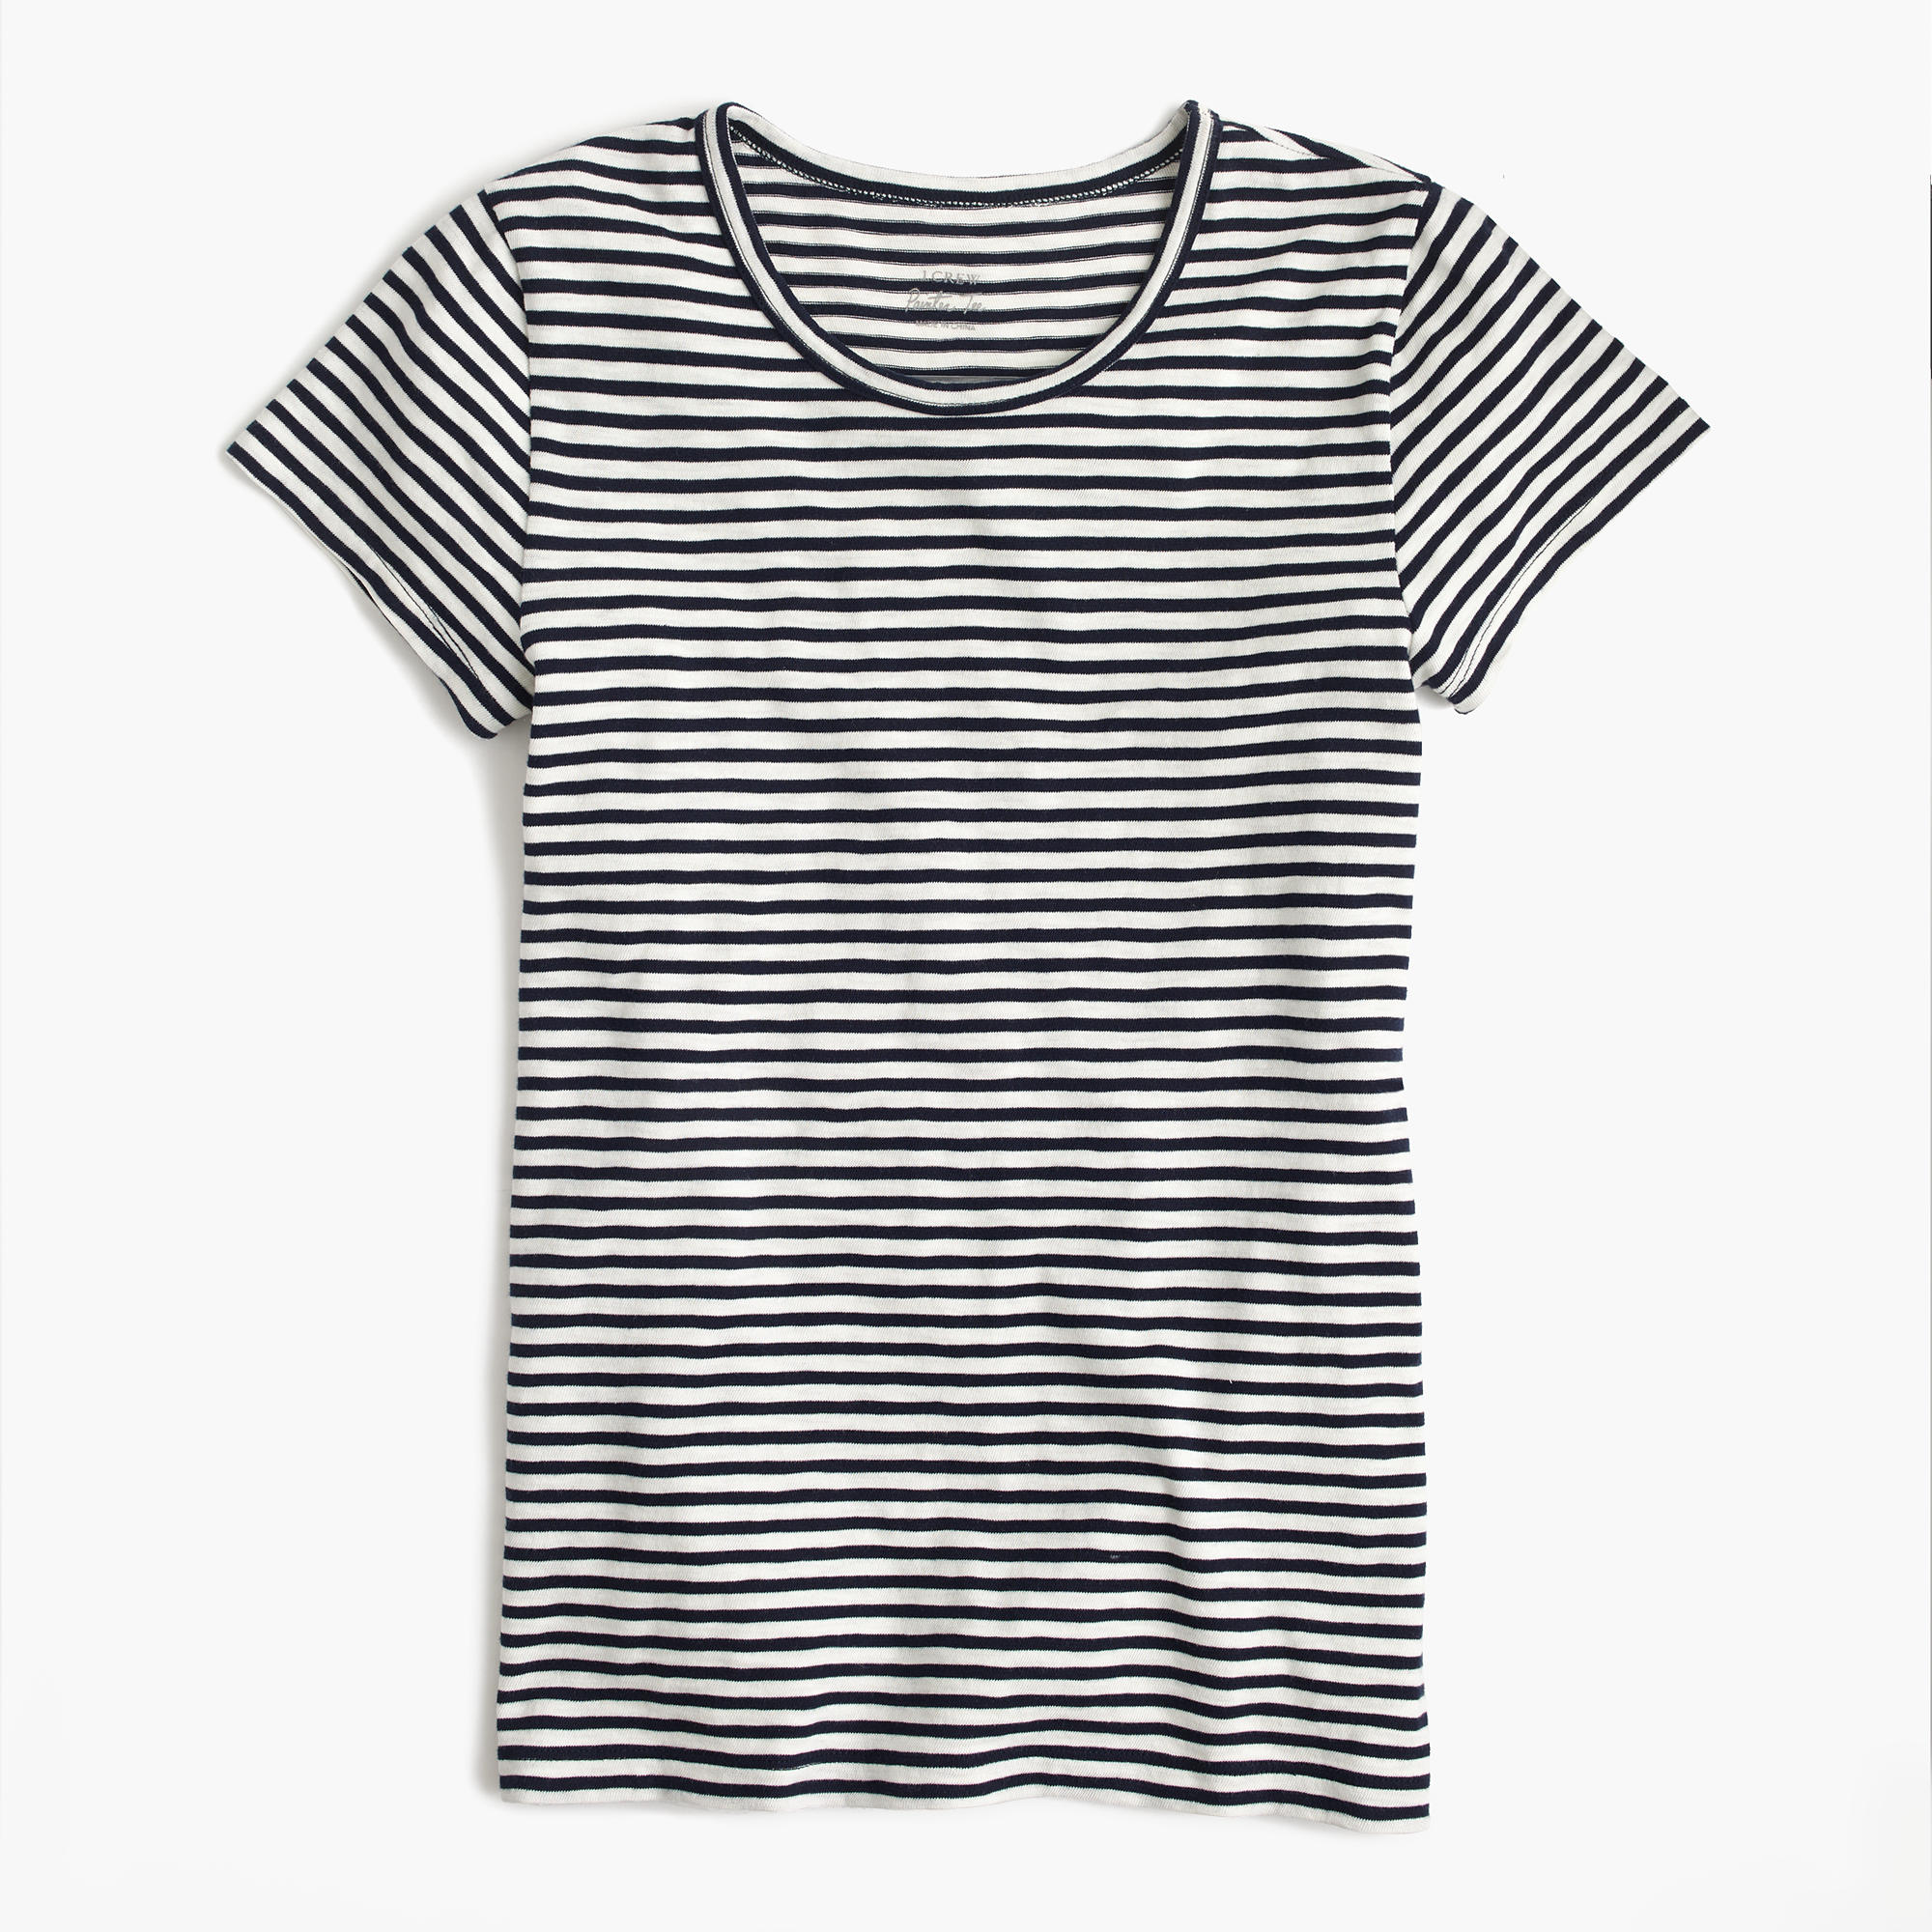 J. CREW SHORT SLEEVE PAINTER T-SHIRT IN STRIPE »» ON SALE $24.50 (USE CODE SPRINGSALE FOR 25% OFF)